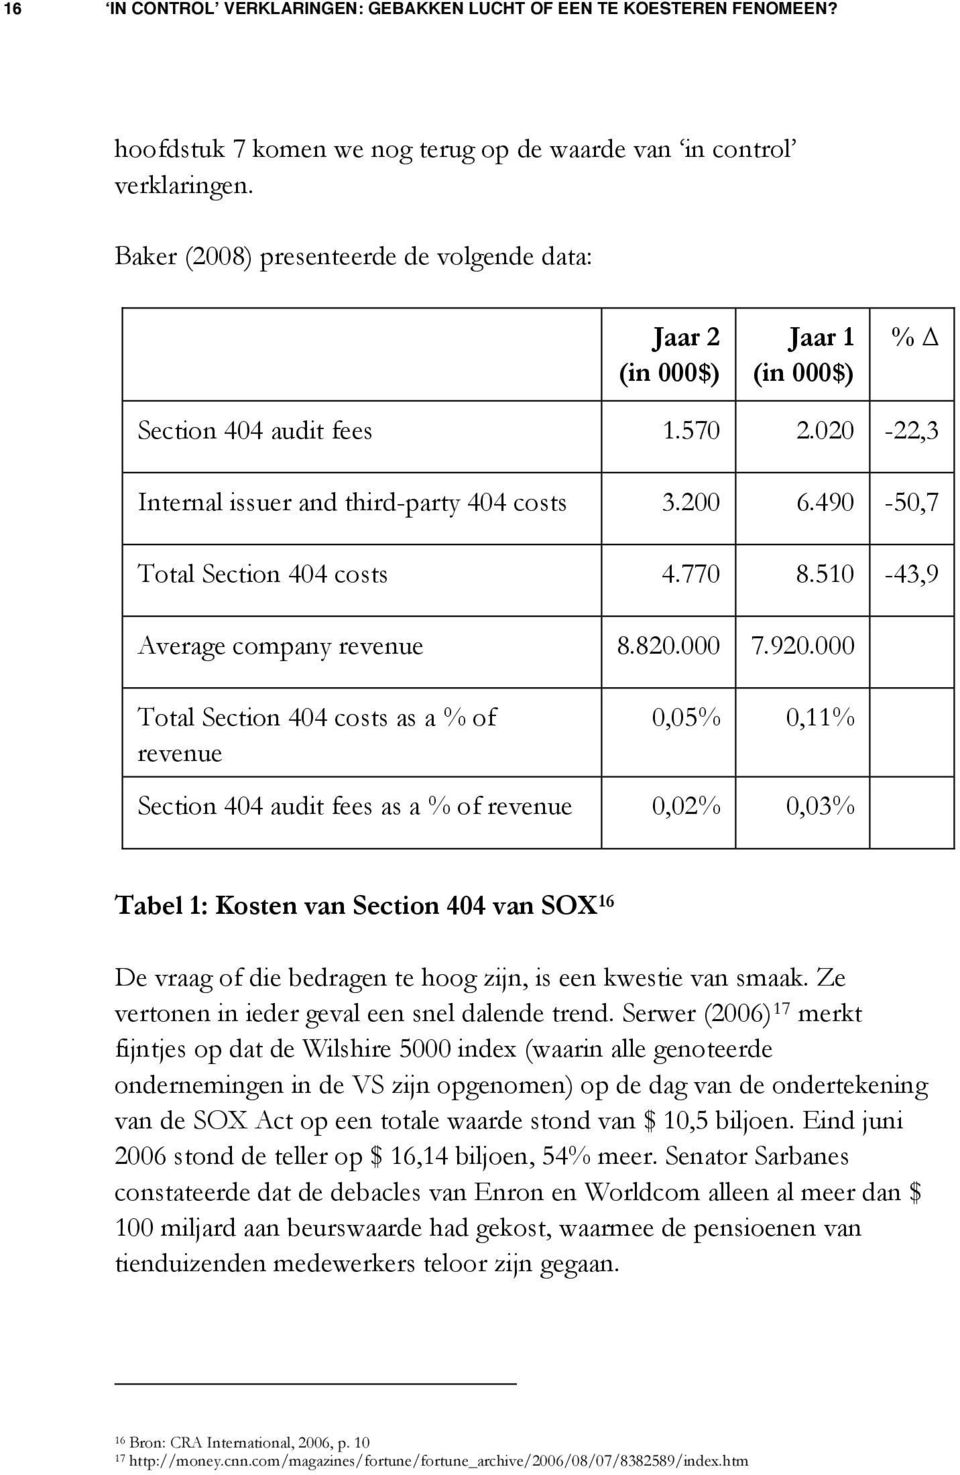 000 Total Section 404 costs as a % of revenue 0,05% 0,11% Section 404 audit fees as a % of revenue 0,02% 0,03% Tabel 1: Kosten van Section 404 van SOX 16 De vraag of die bedragen te hoog zijn, is een